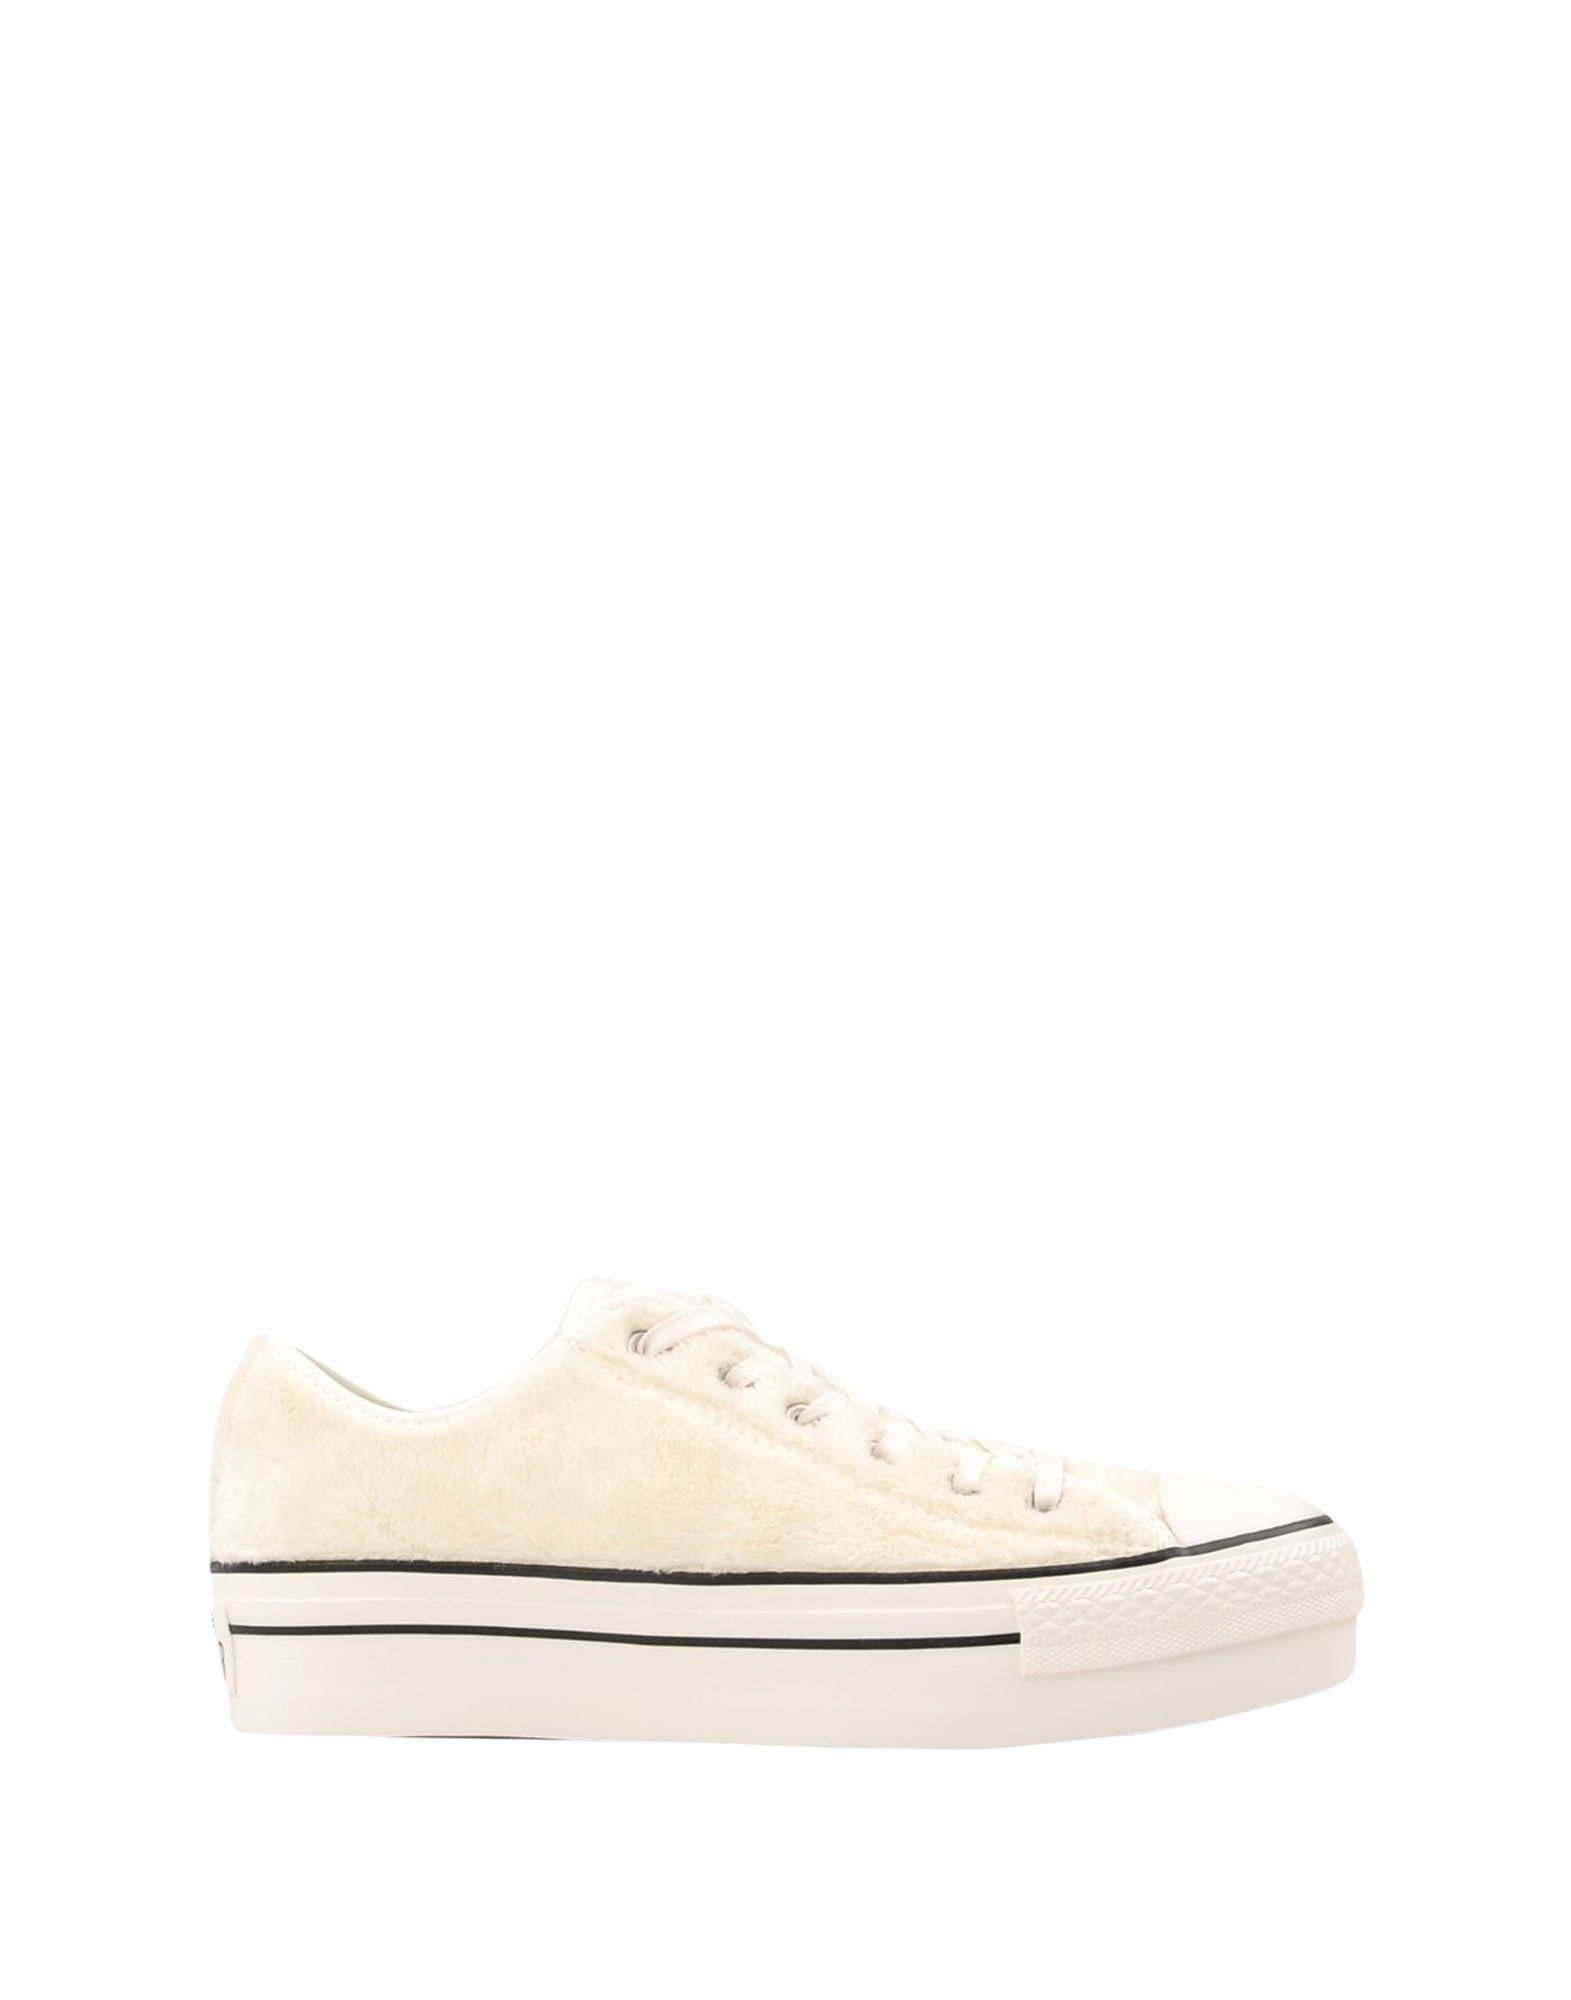 Sneakers Converse All Star Ct As Ox Platform Faux Fur - Femme - Sneakers Converse All Star sur